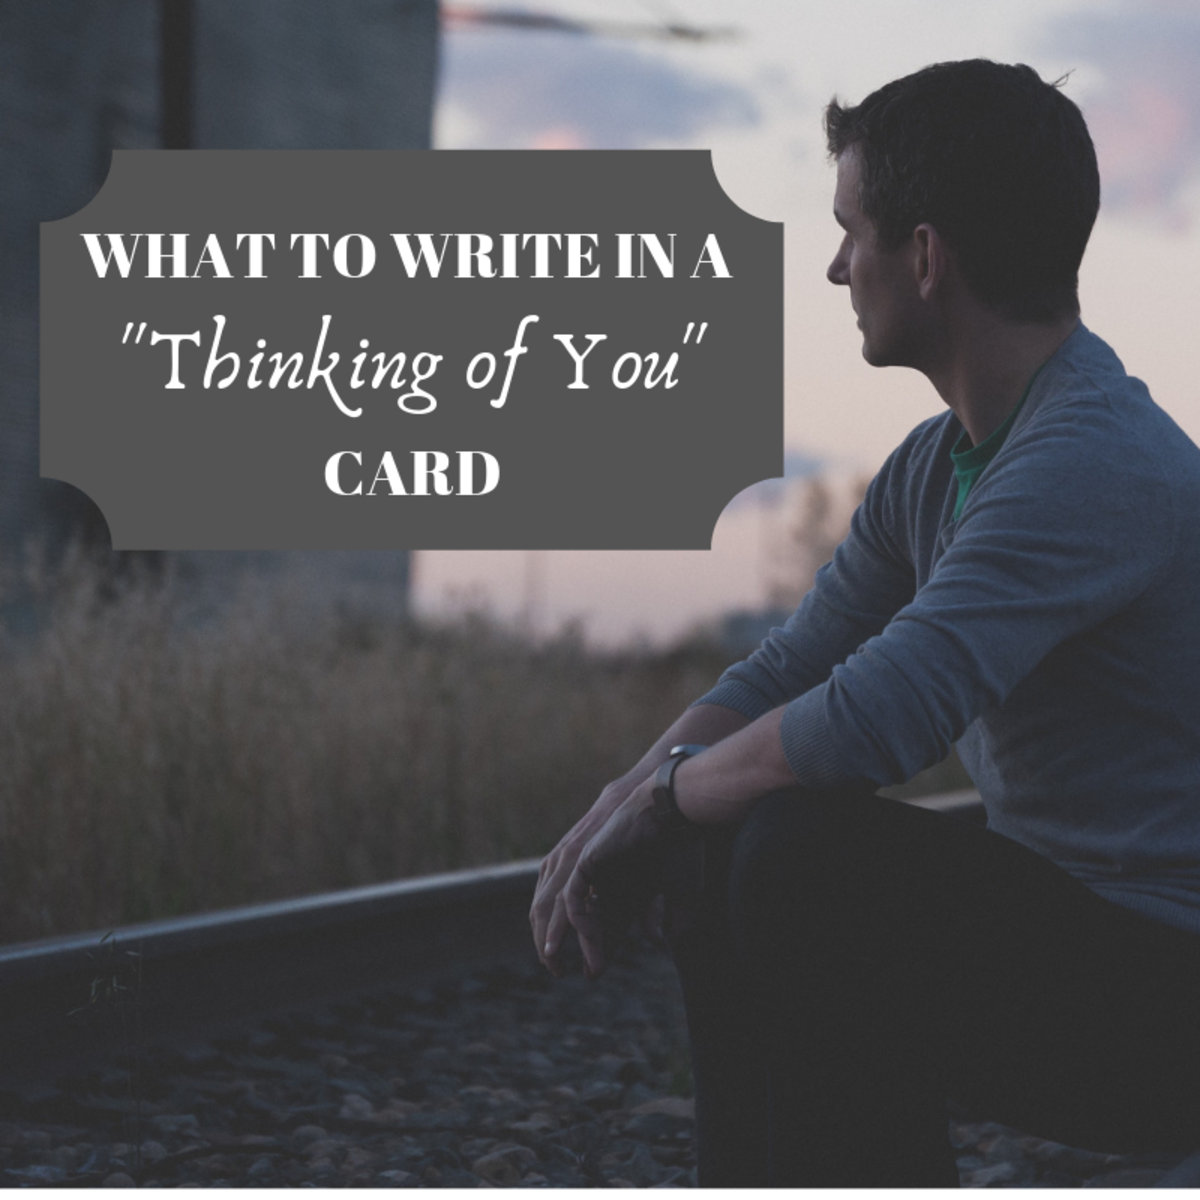 Thinking of You Messages: What to Write in a Card